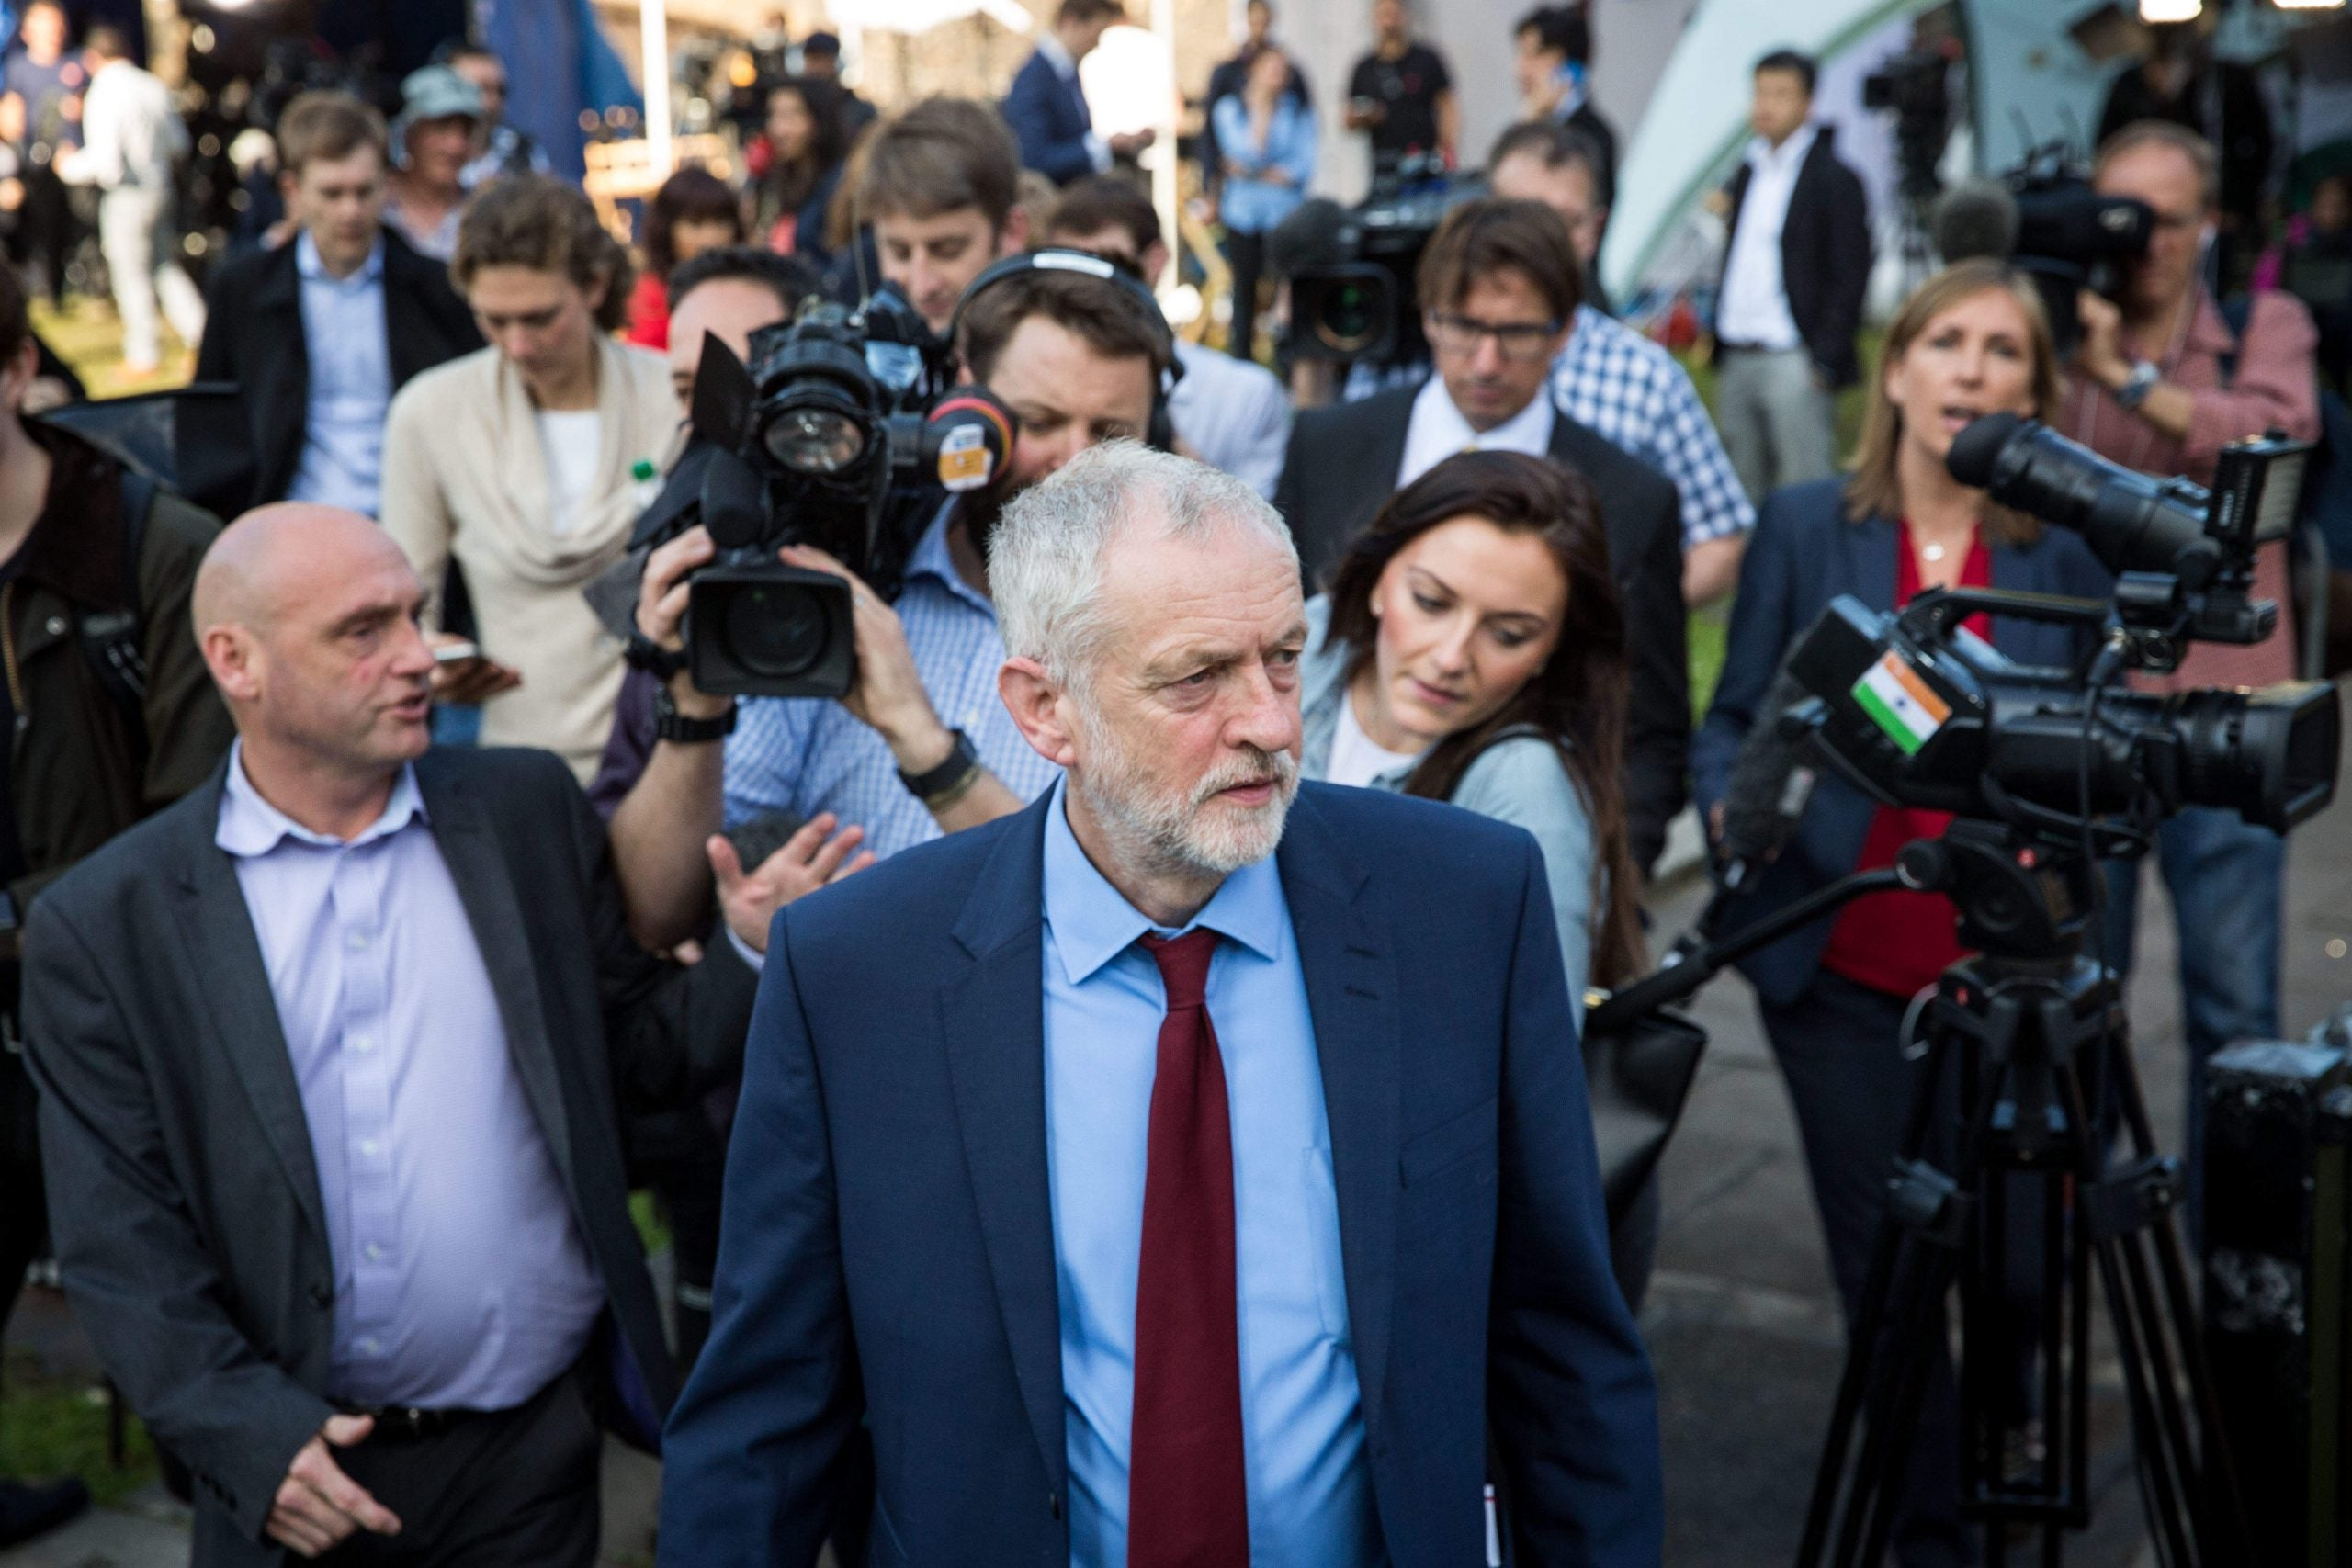 Jeremy Corbyn faces a dilemma as Brexit solidifies: which half of his voters should he disappoint?